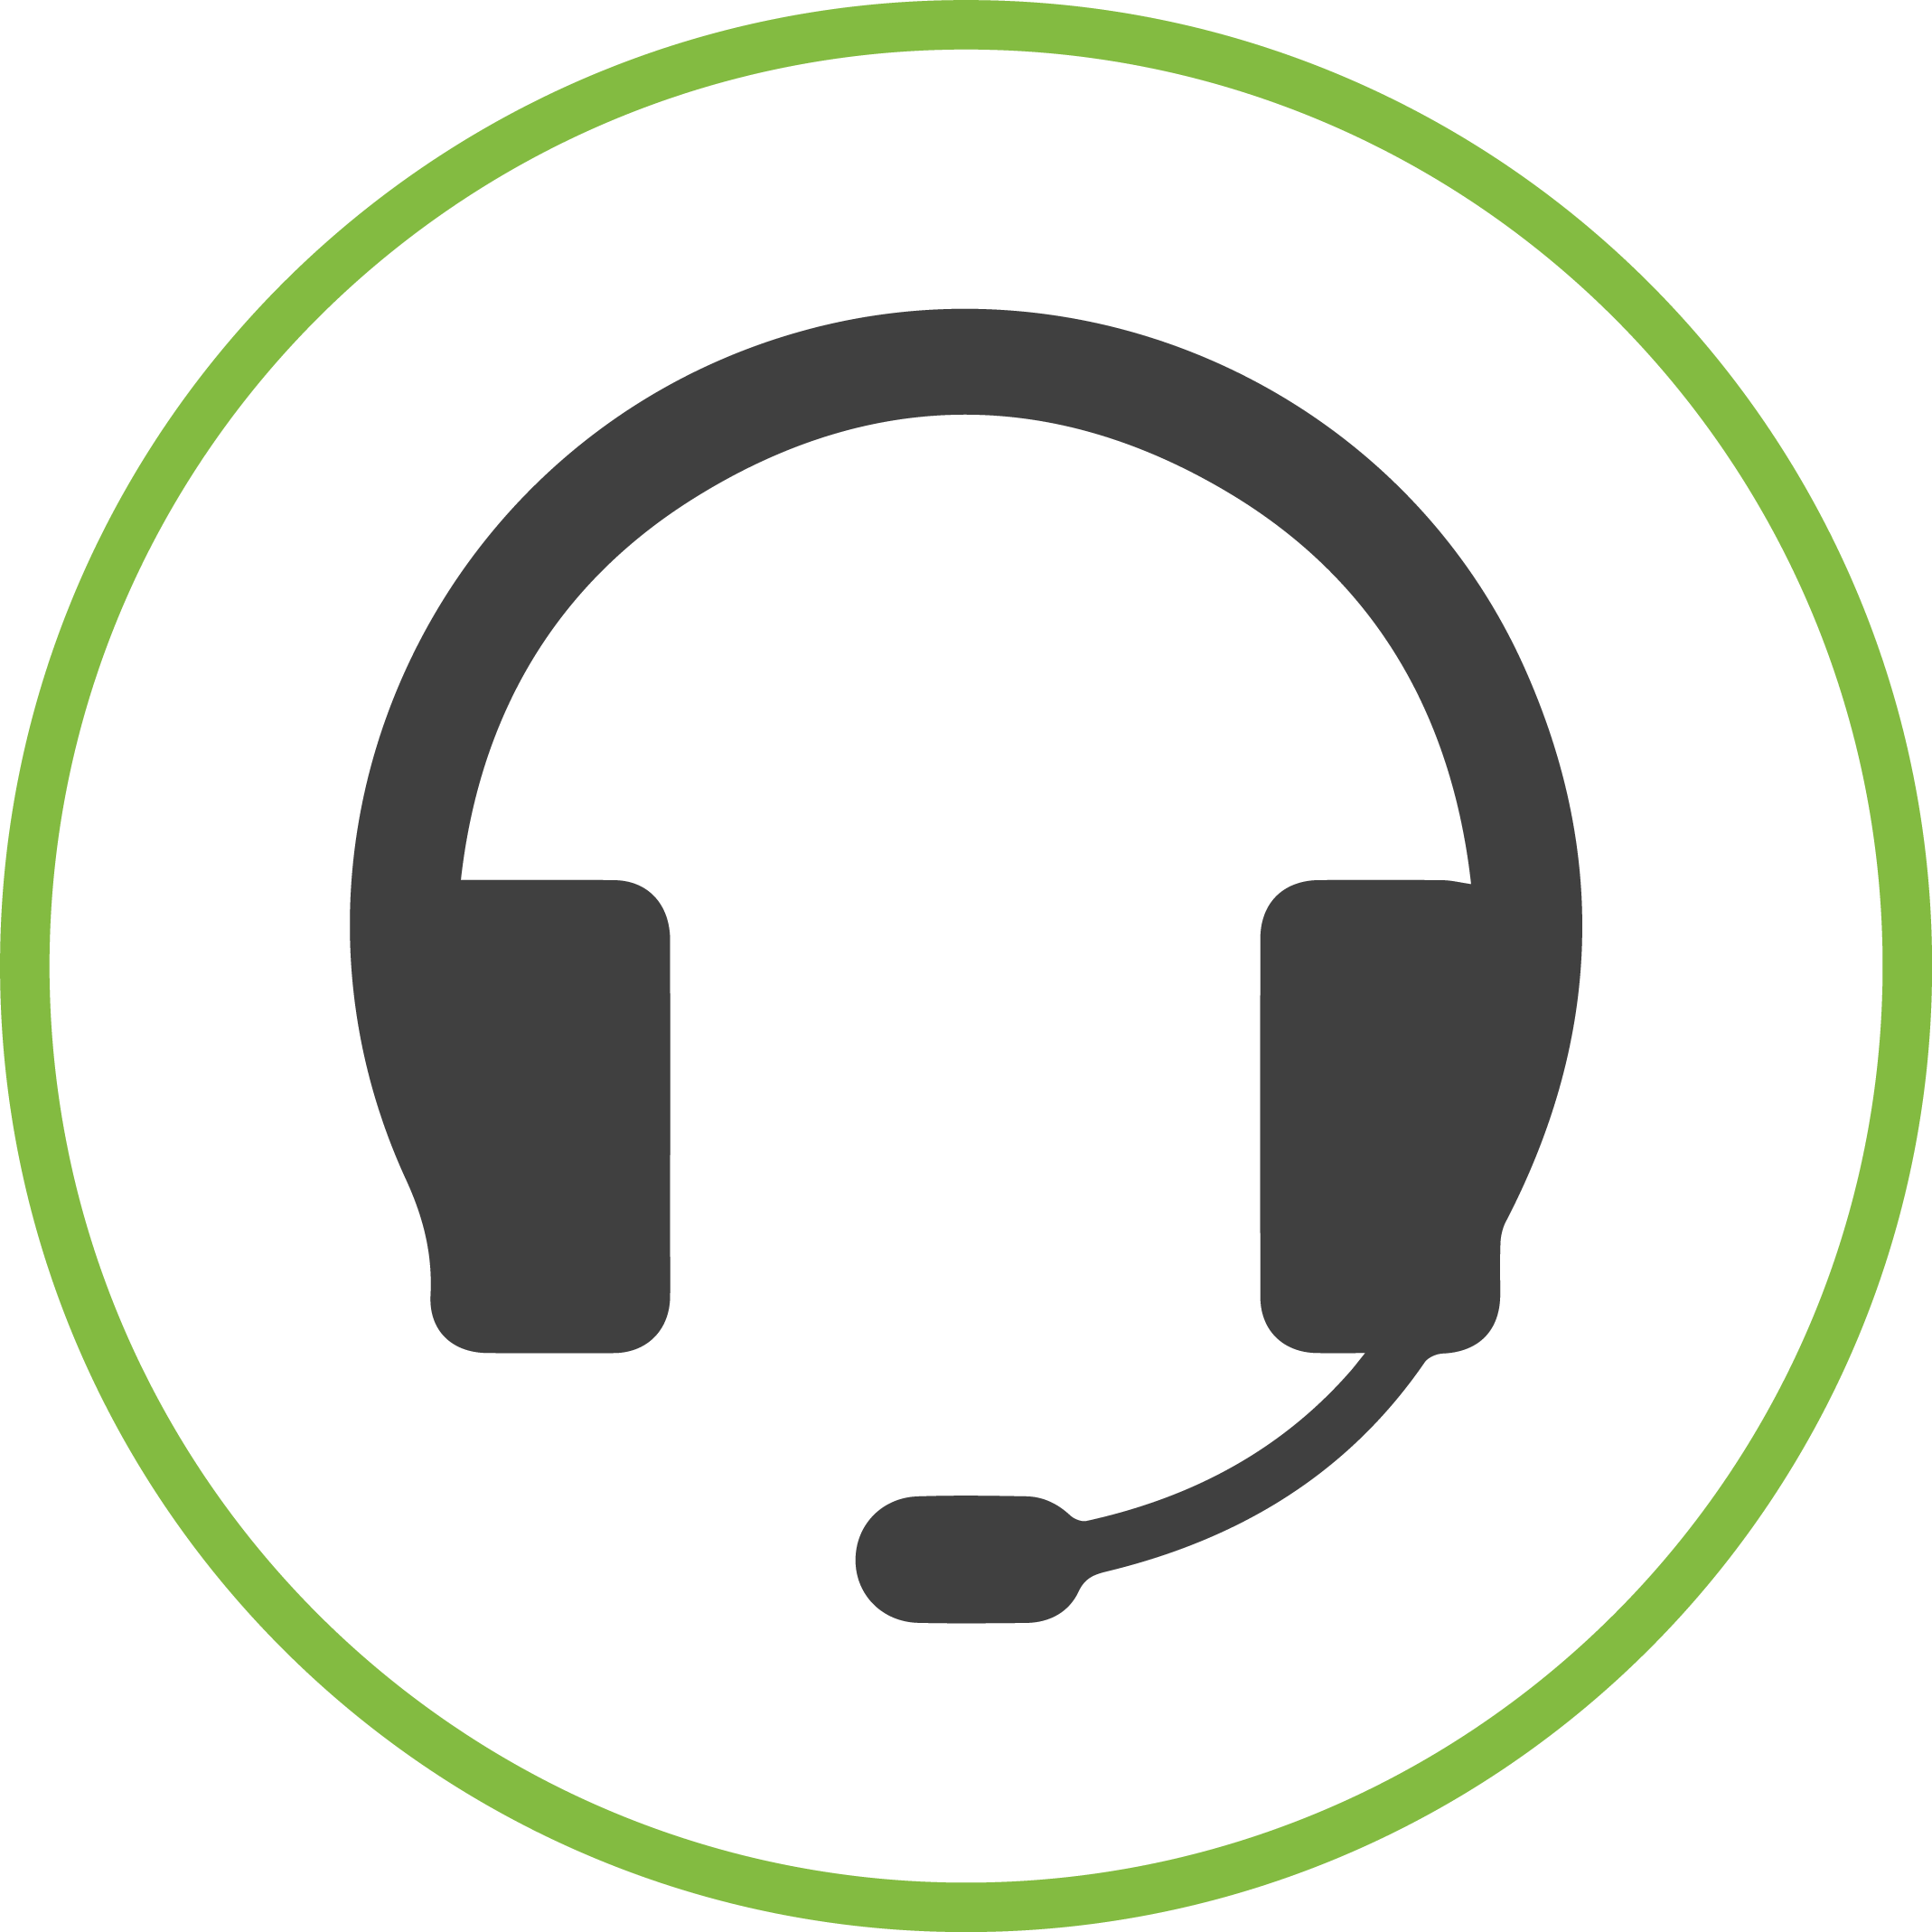 Phone Headset Icon Customer Support Headset Icon Png Full Size Png Download Seekpng